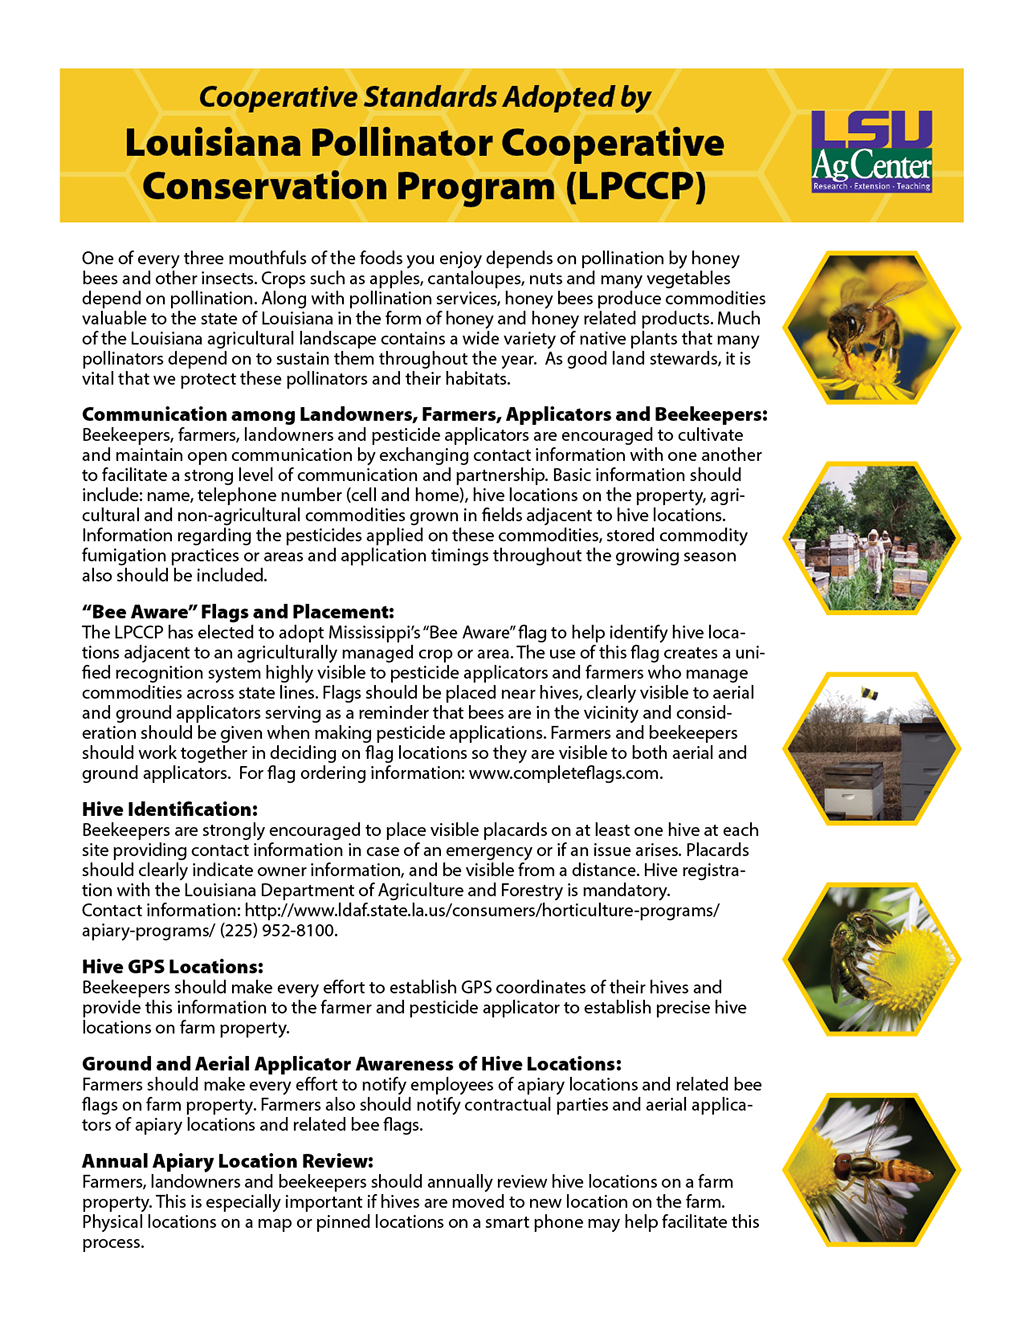 Cooperative Standards Adopted by Louisiana Pollinator Cooperative Conservation Program